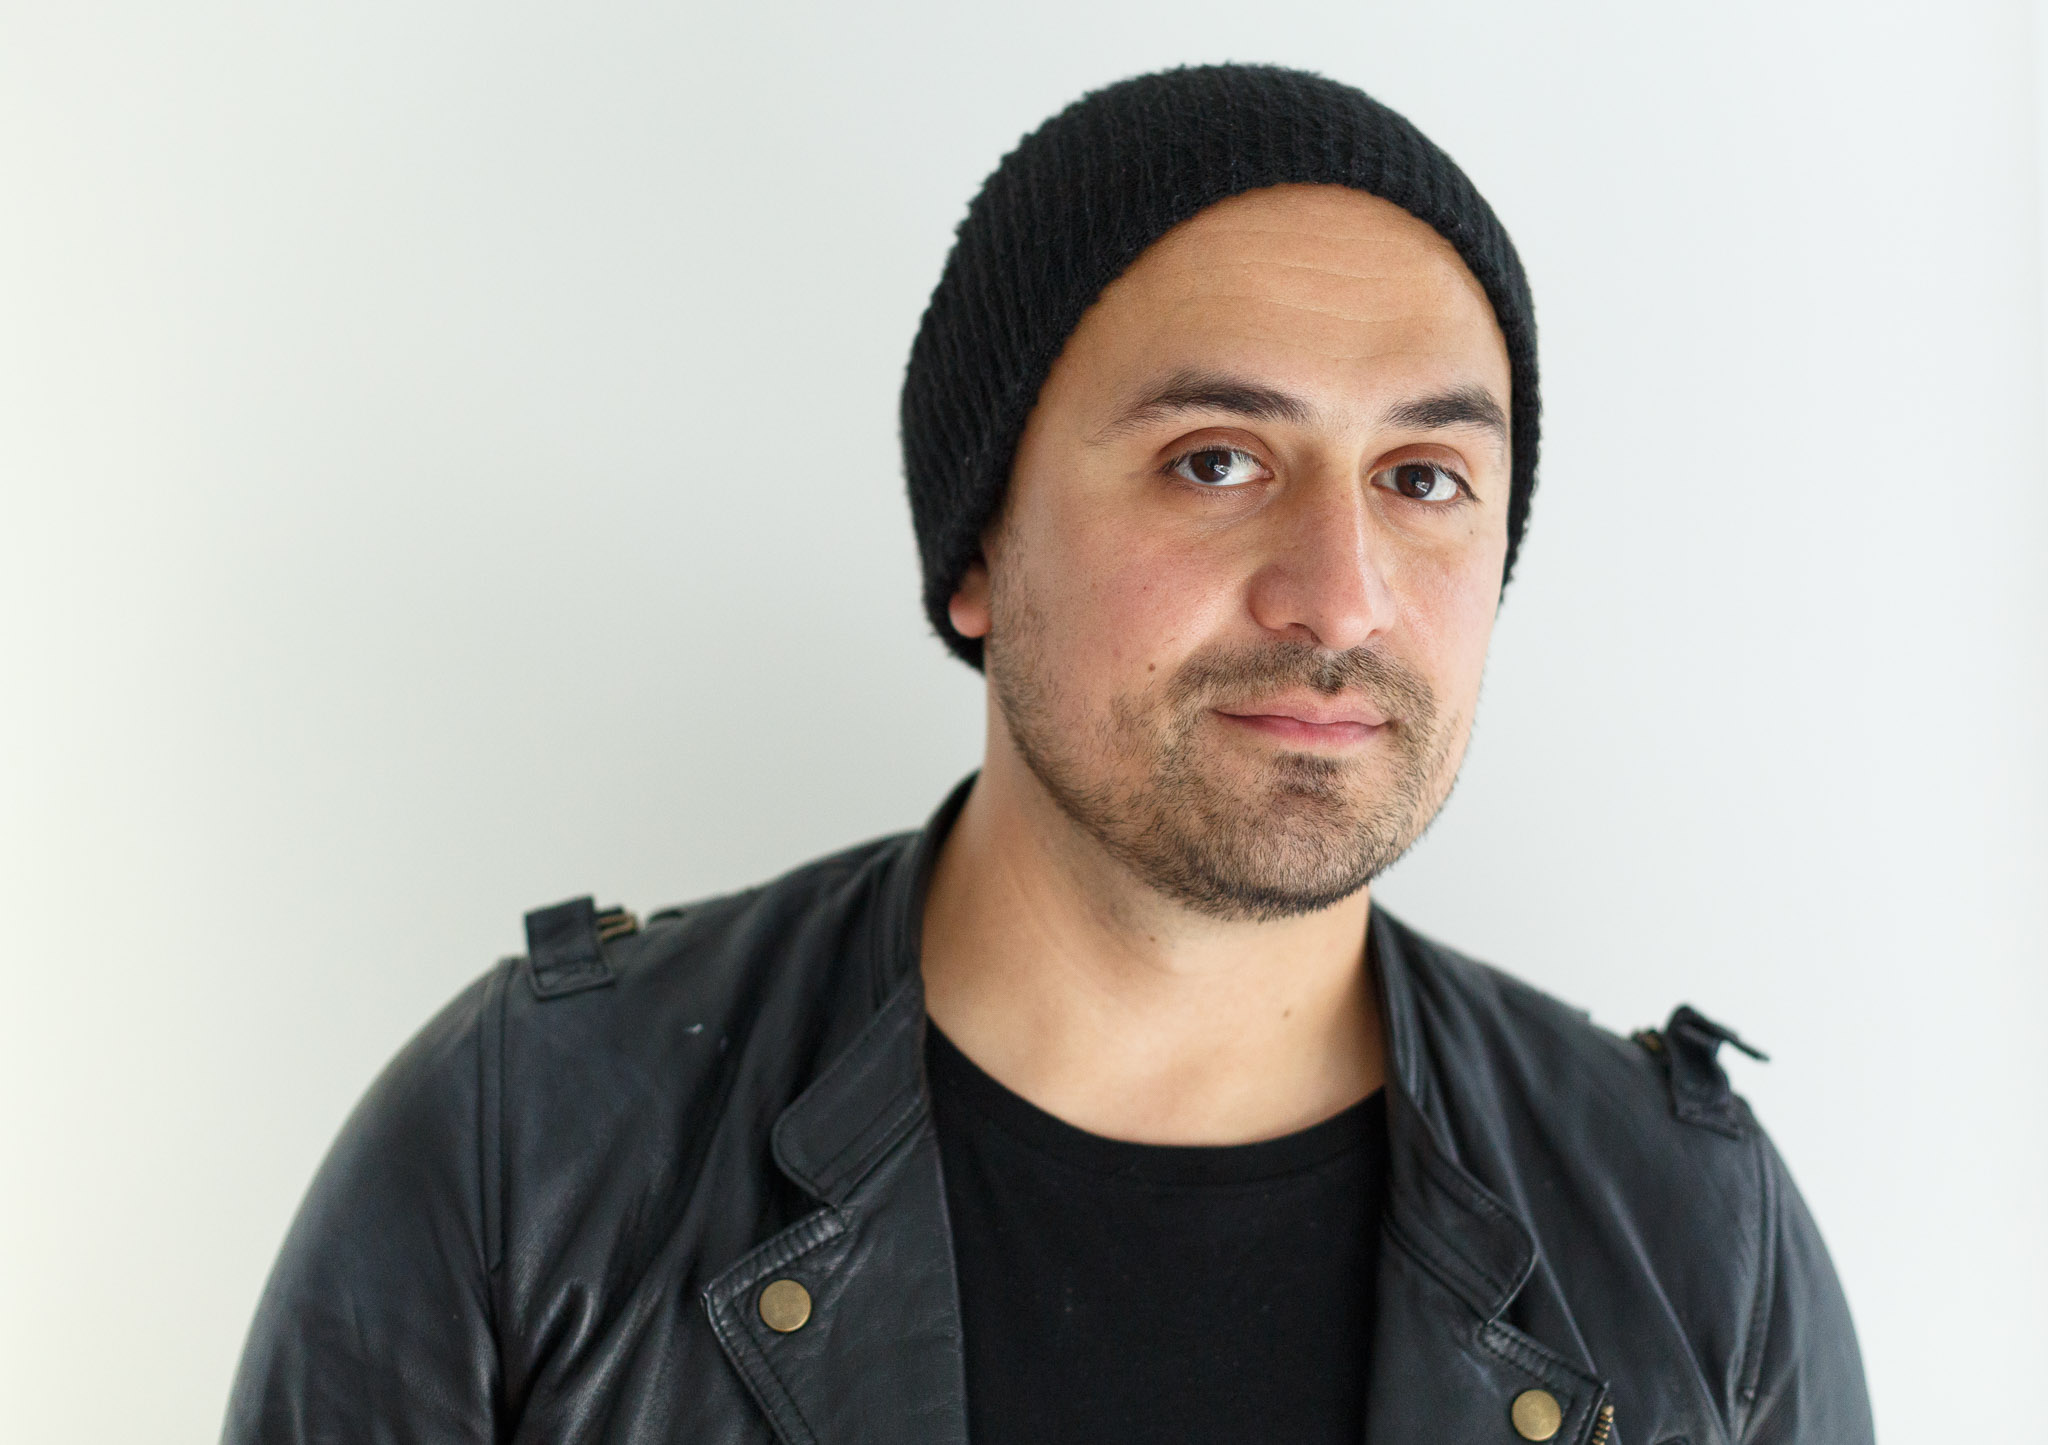 Oved Valadez, co-founder and creative director of Industry